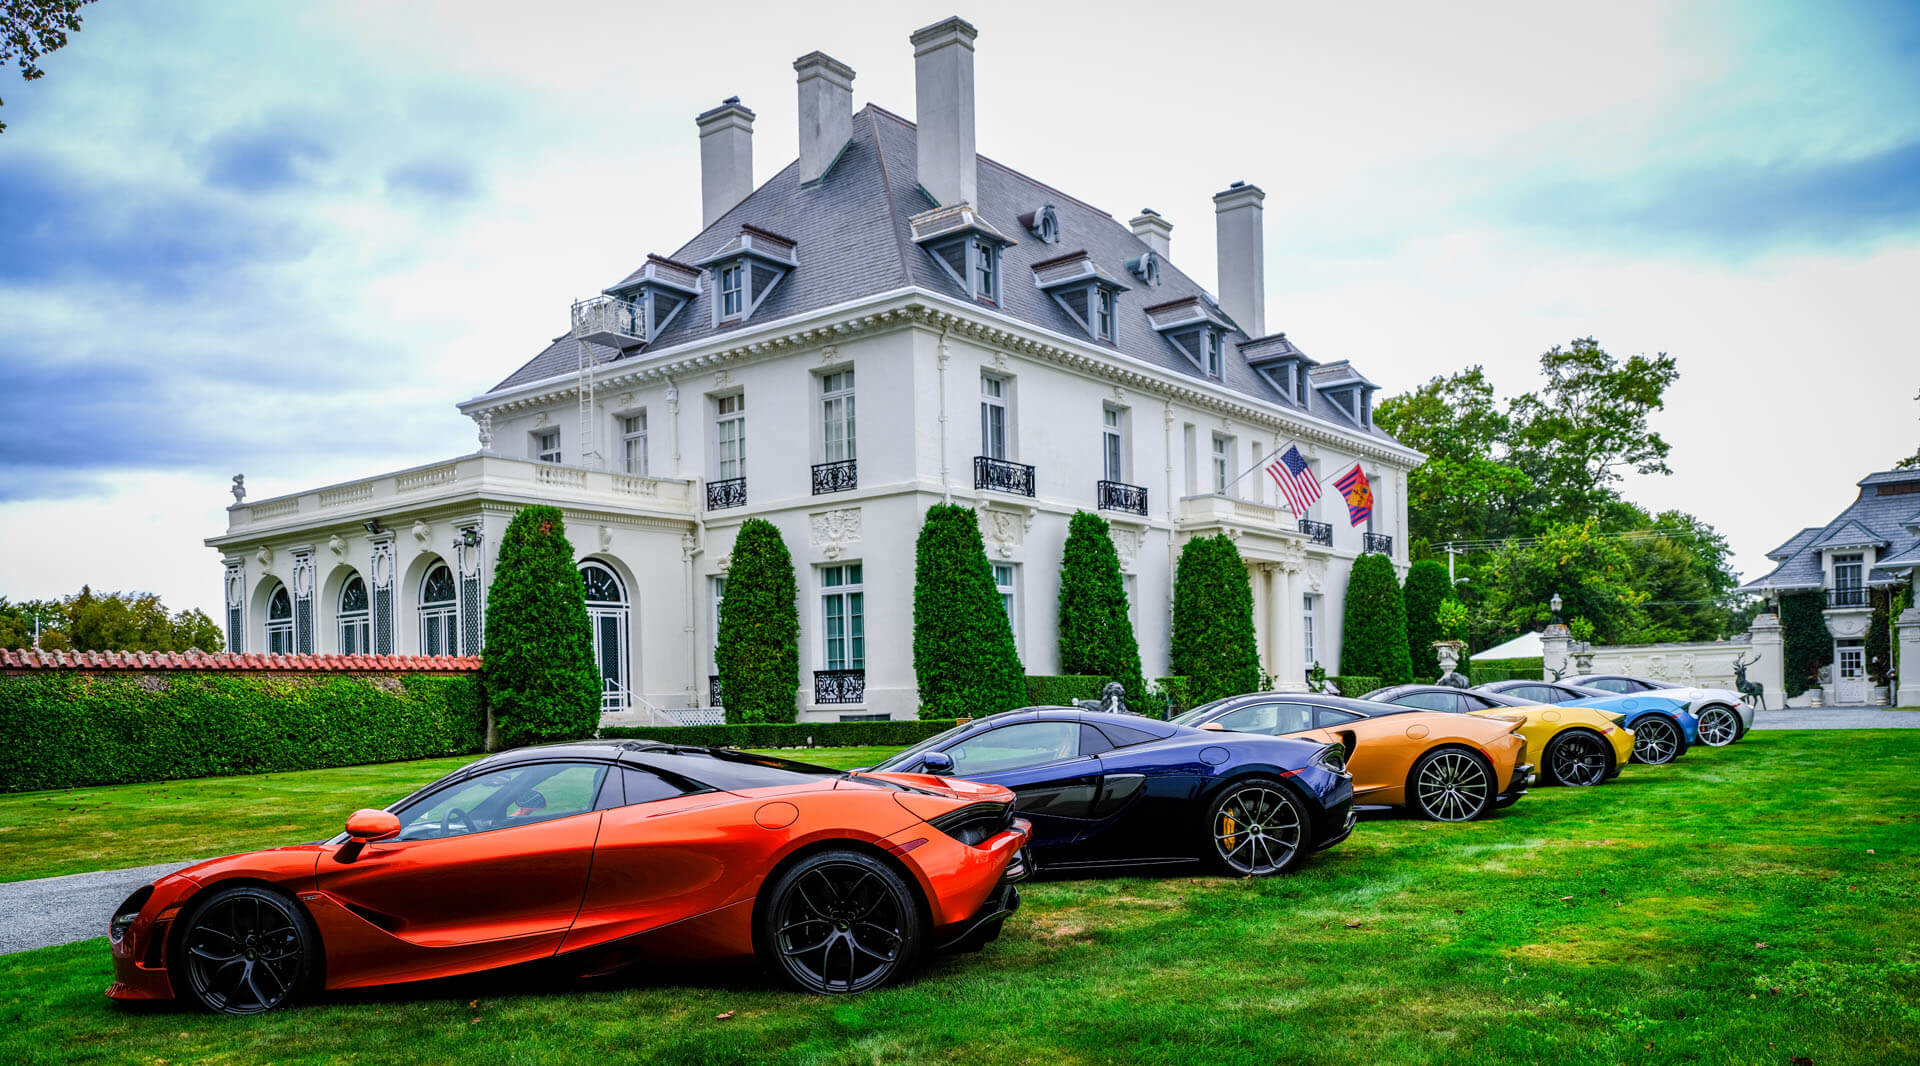 McLarens at Vernon Court during Audrain's Newport Concours Motor Week